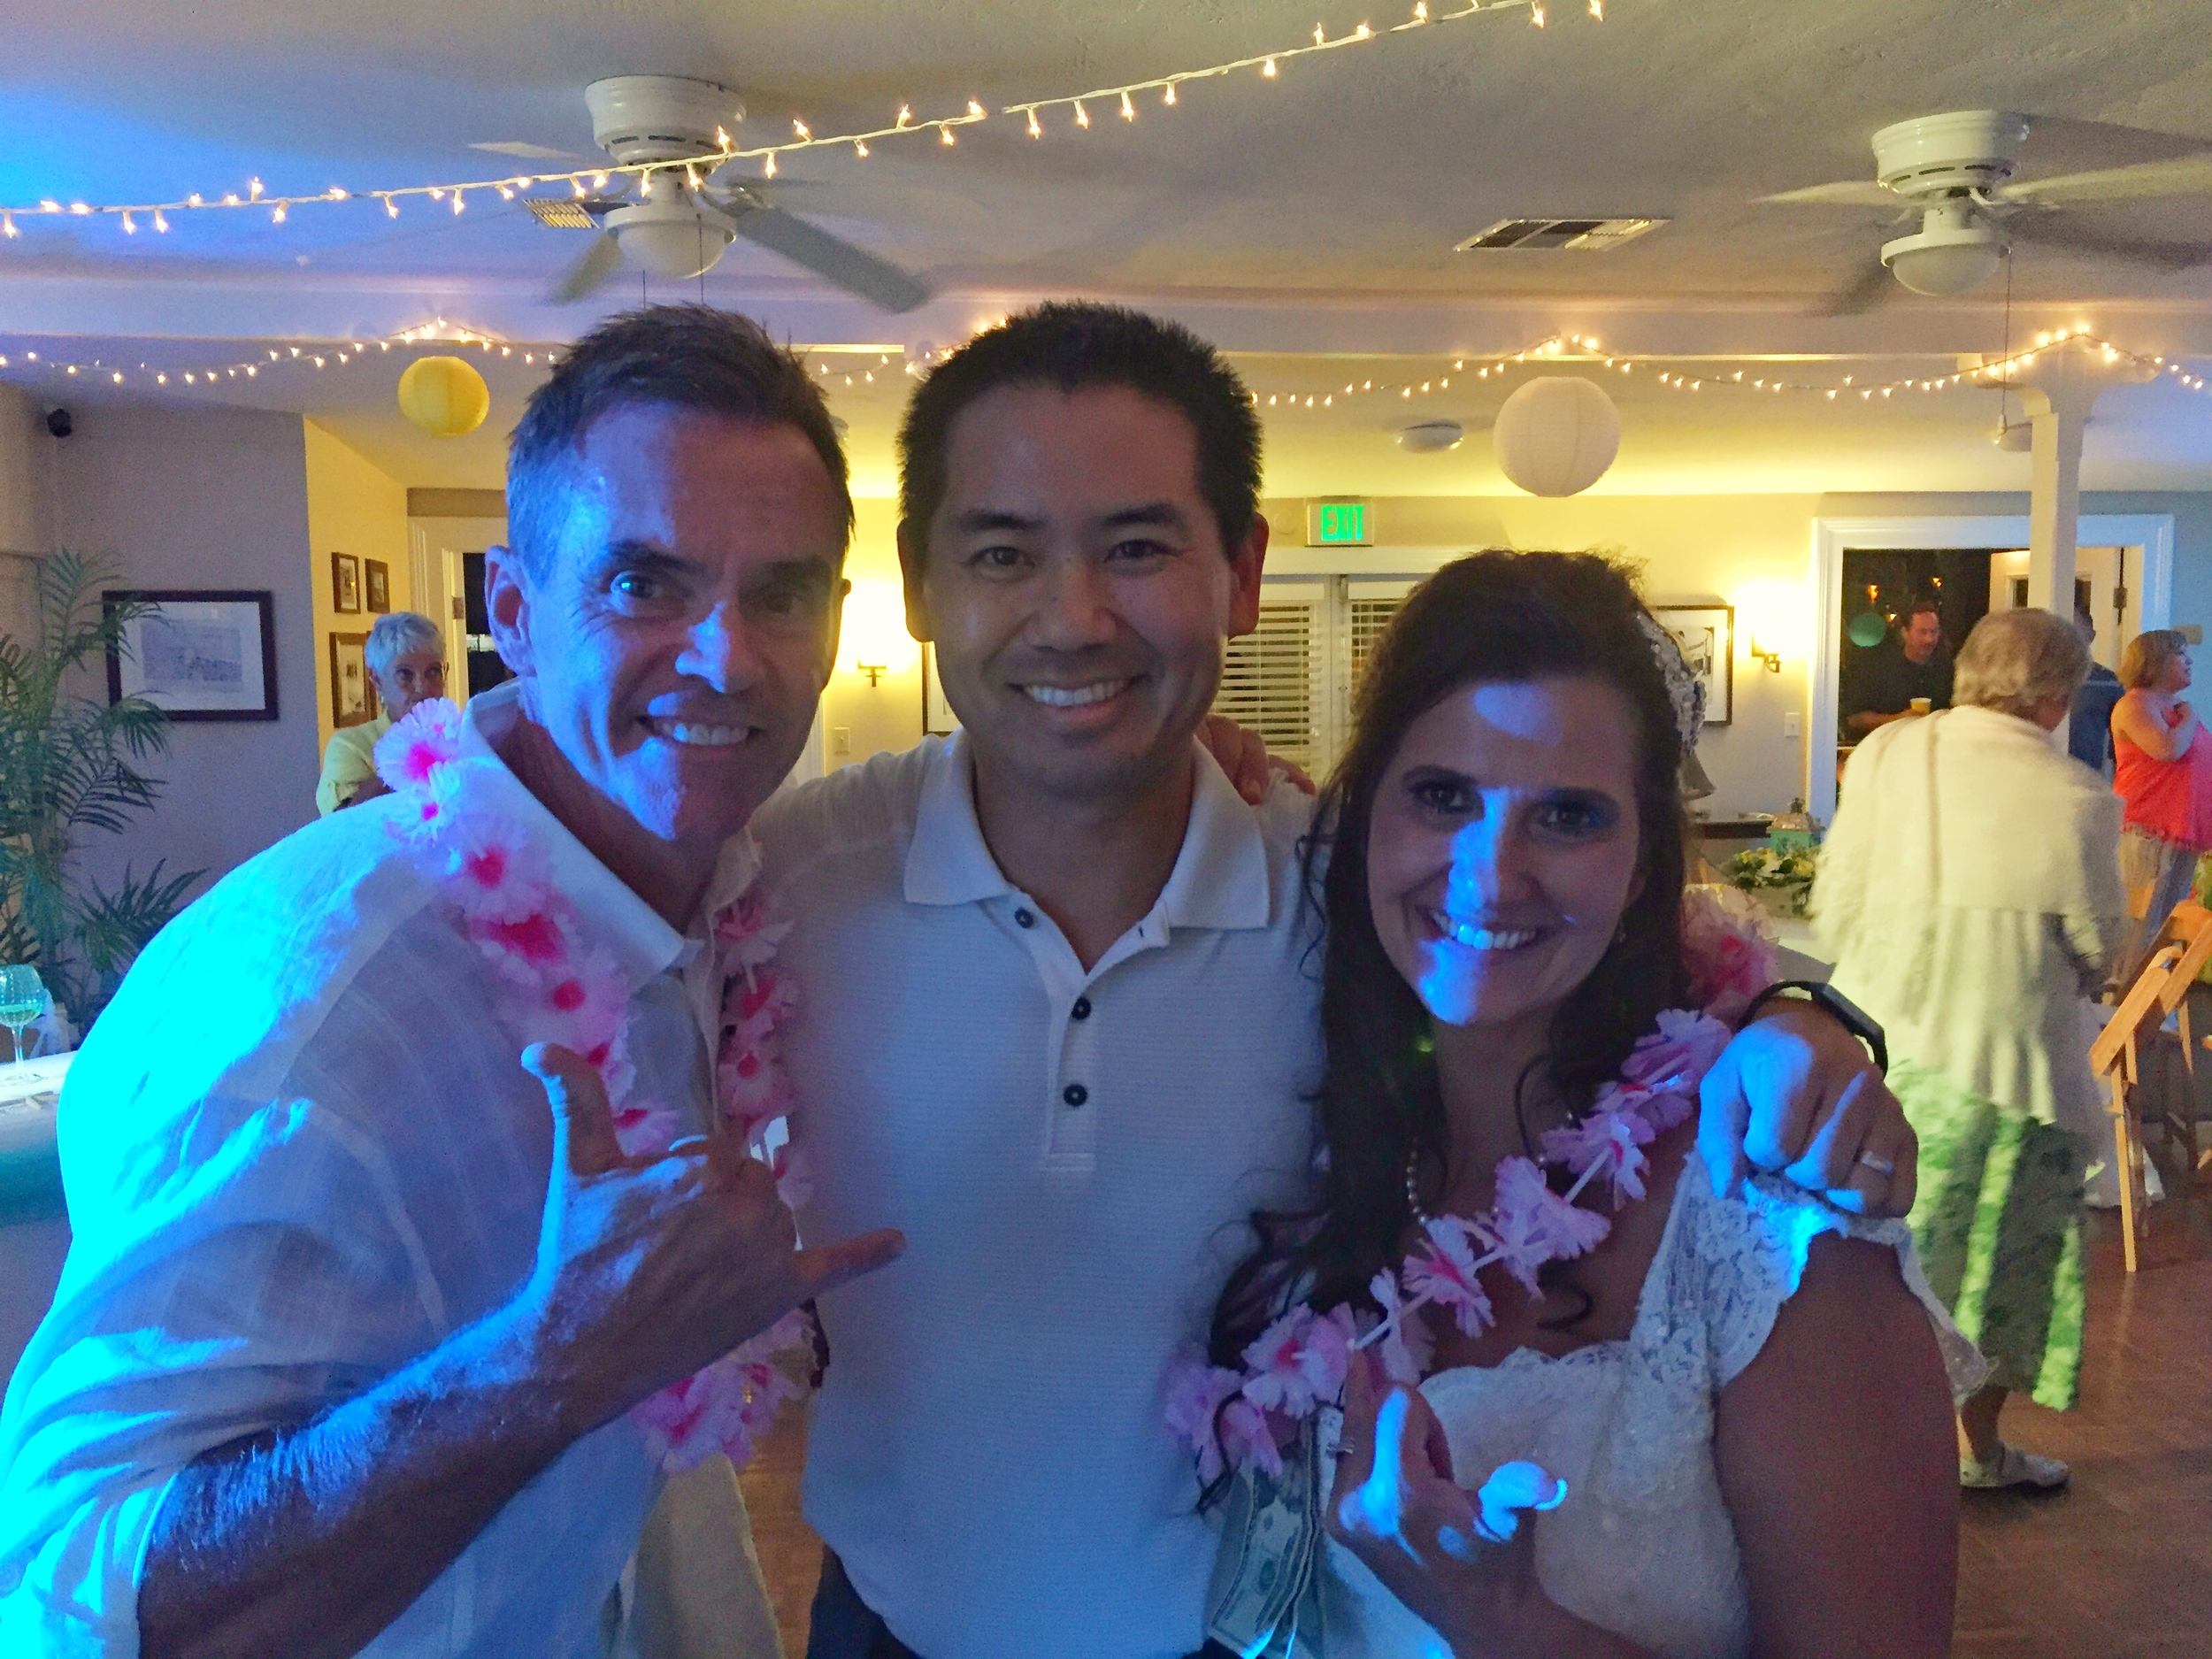 Tim and Gina with San Diego DJ Justin Kanoya at their wedding at the Mission Beach Women's Club.